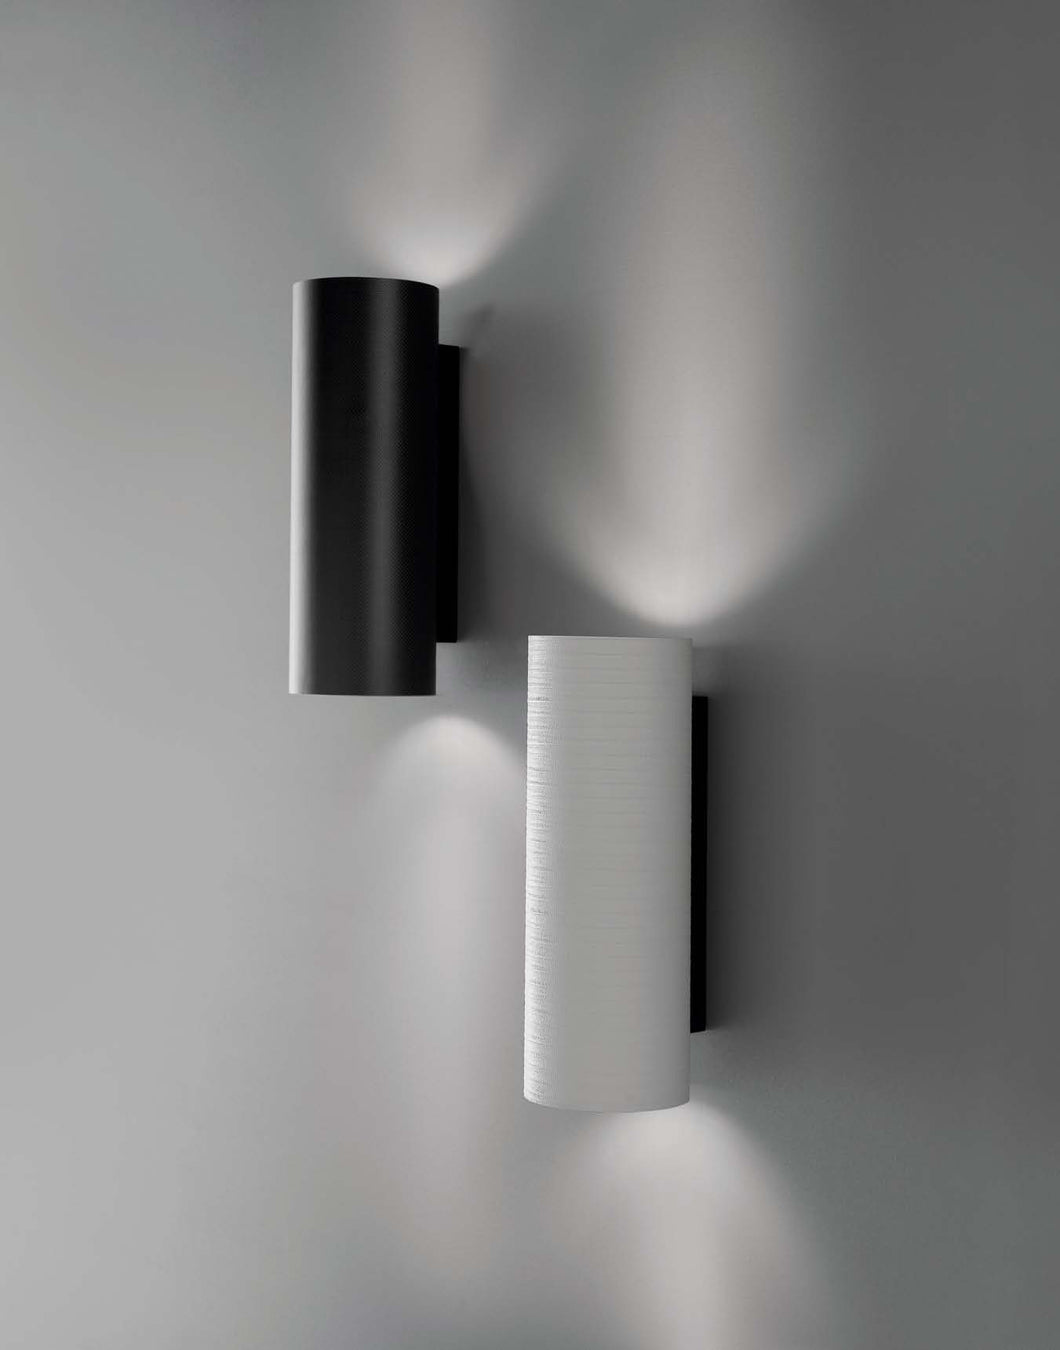 Tube Wall Light range by Karboxx